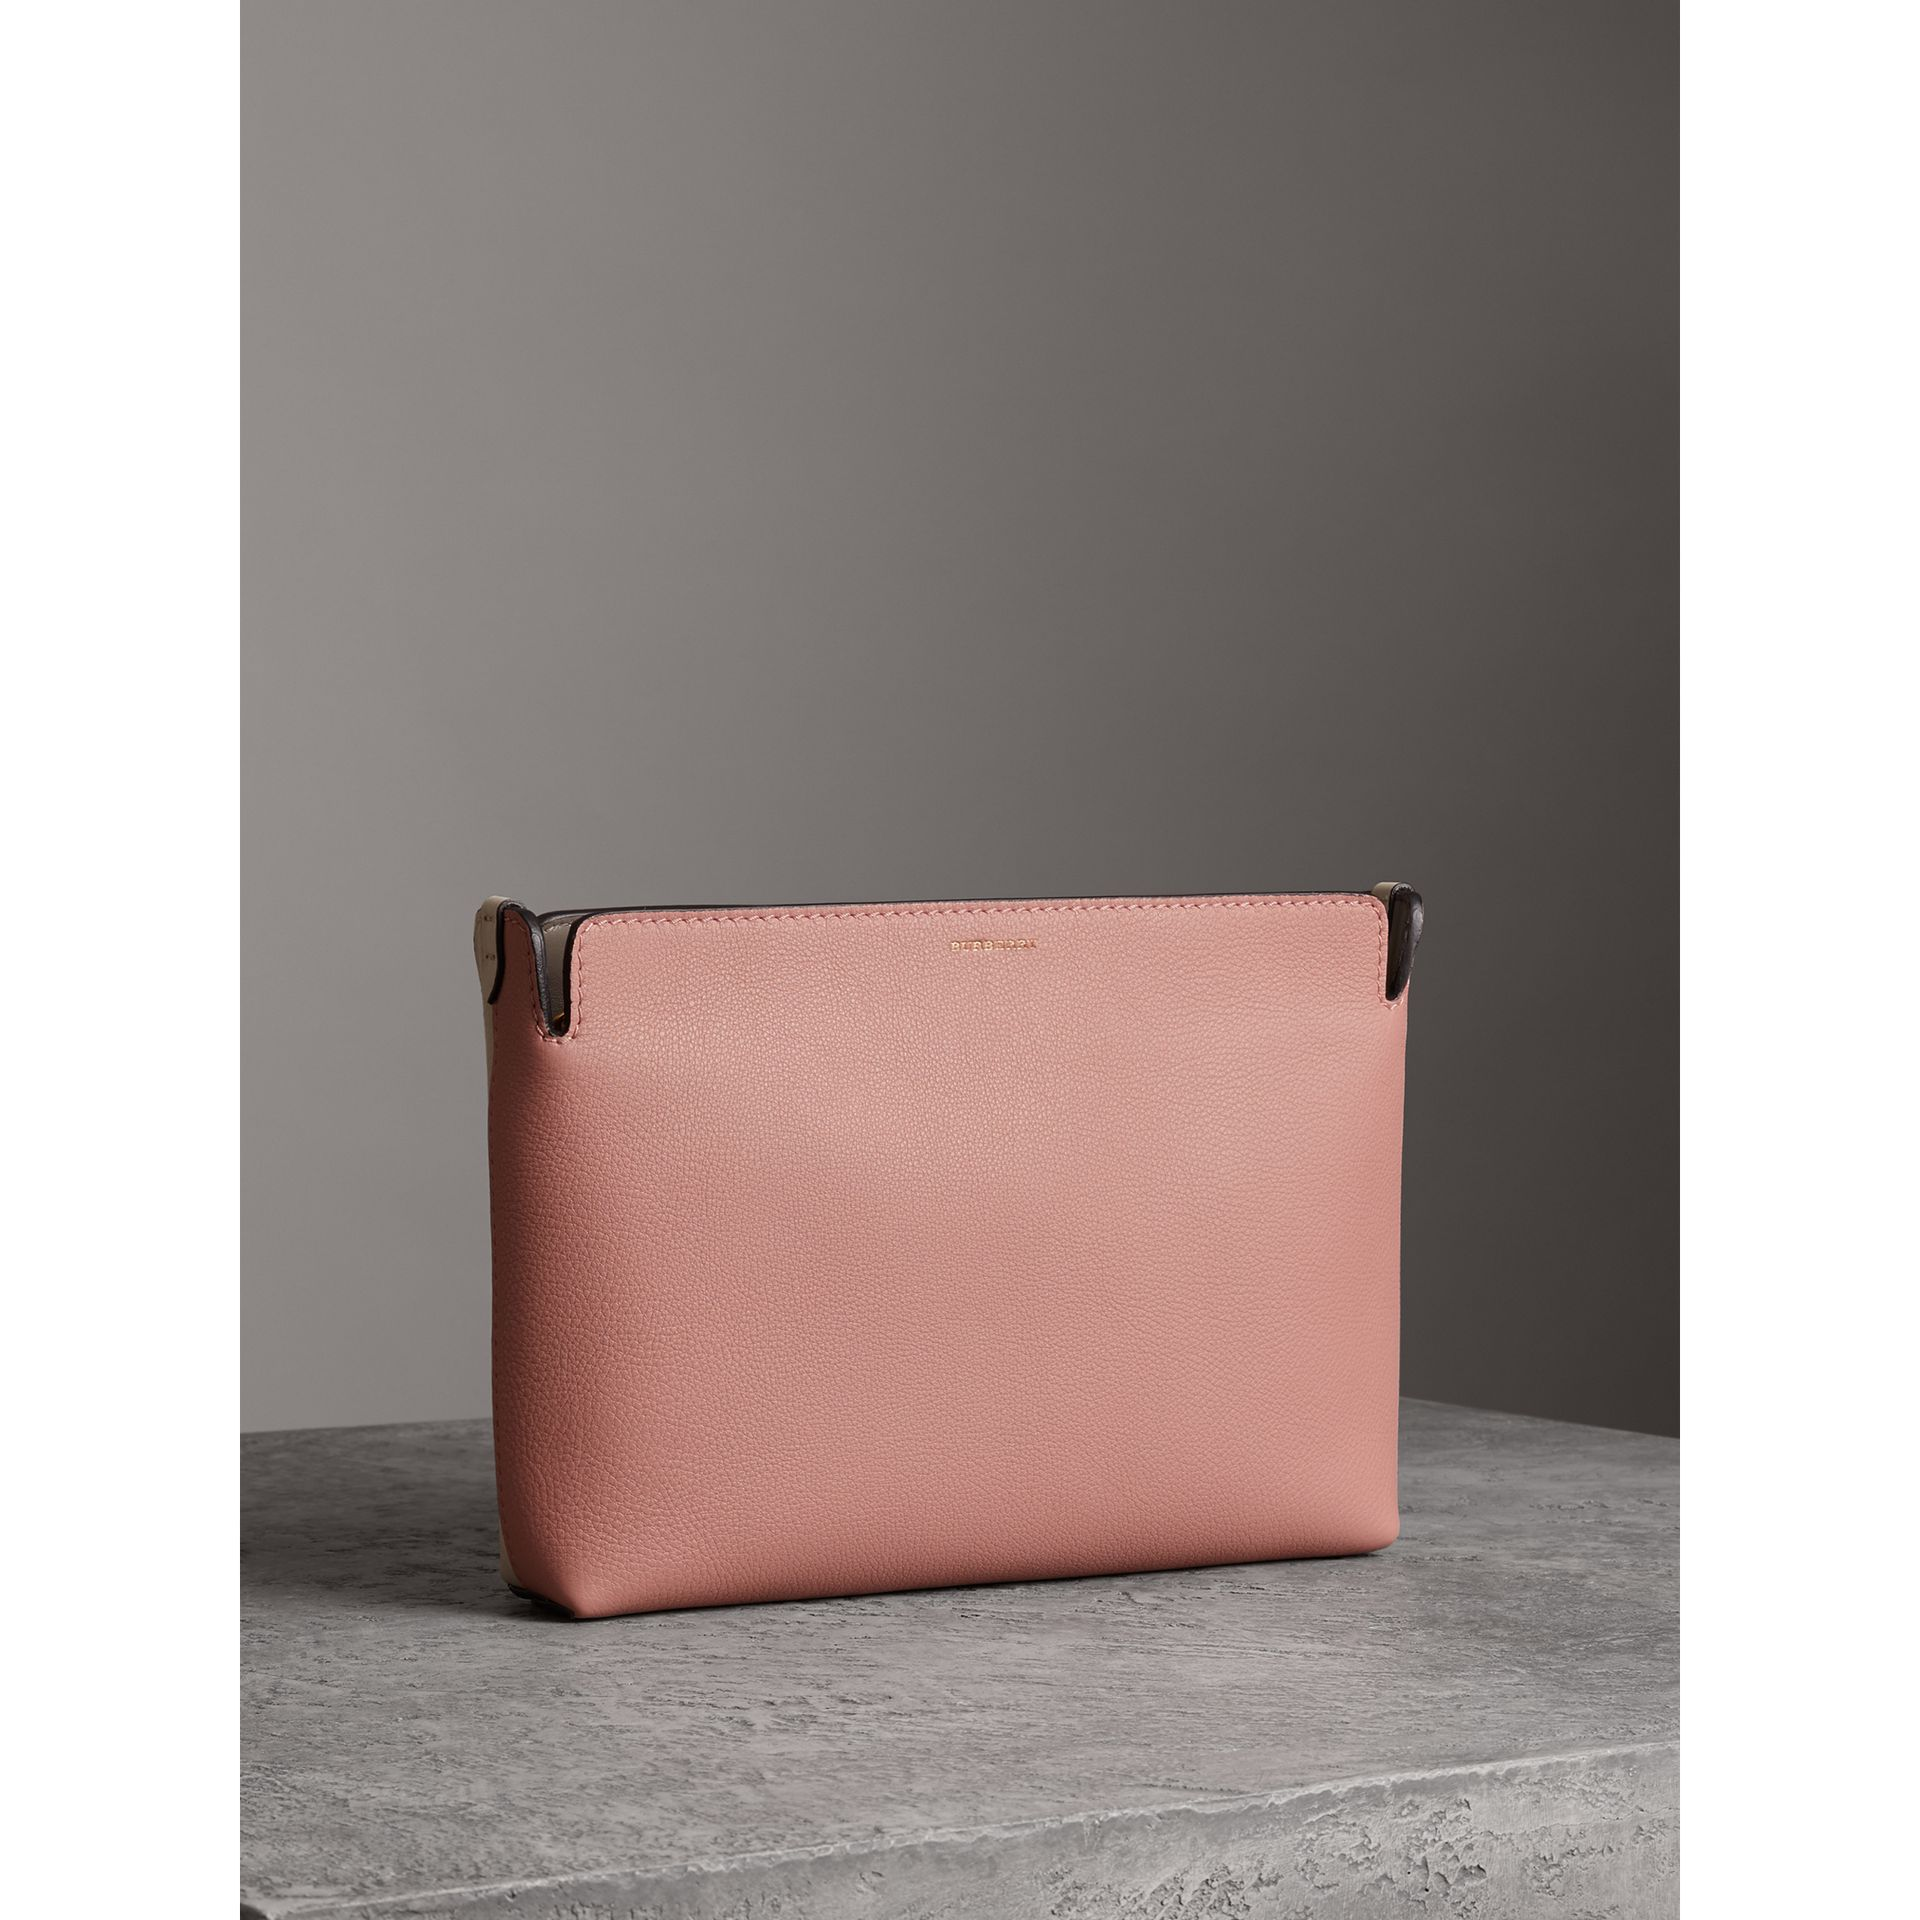 Medium Tri-tone Leather Clutch in Dusty Rose/limestone | Burberry Australia - gallery image 6